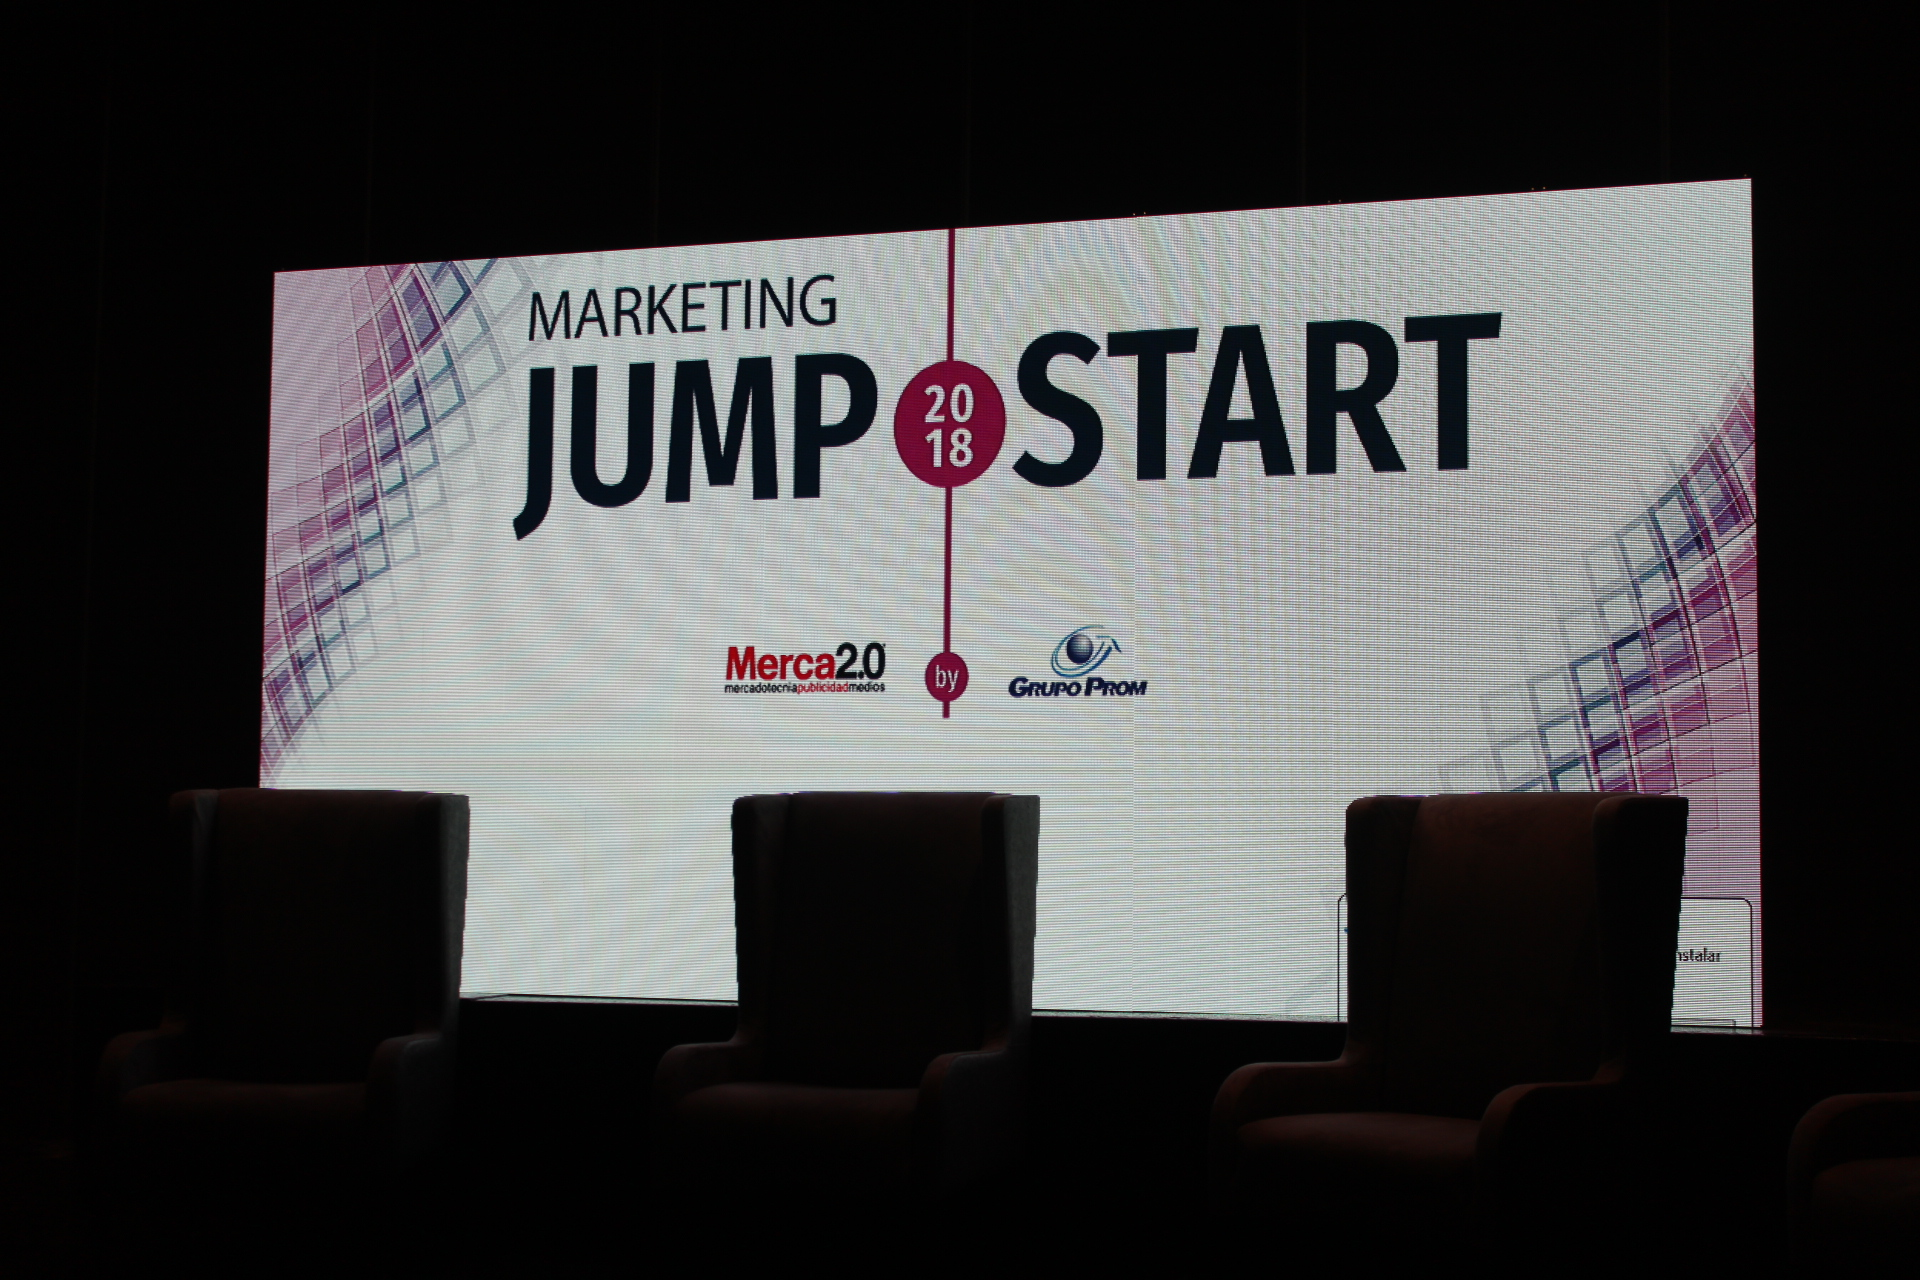 Marketing jump start